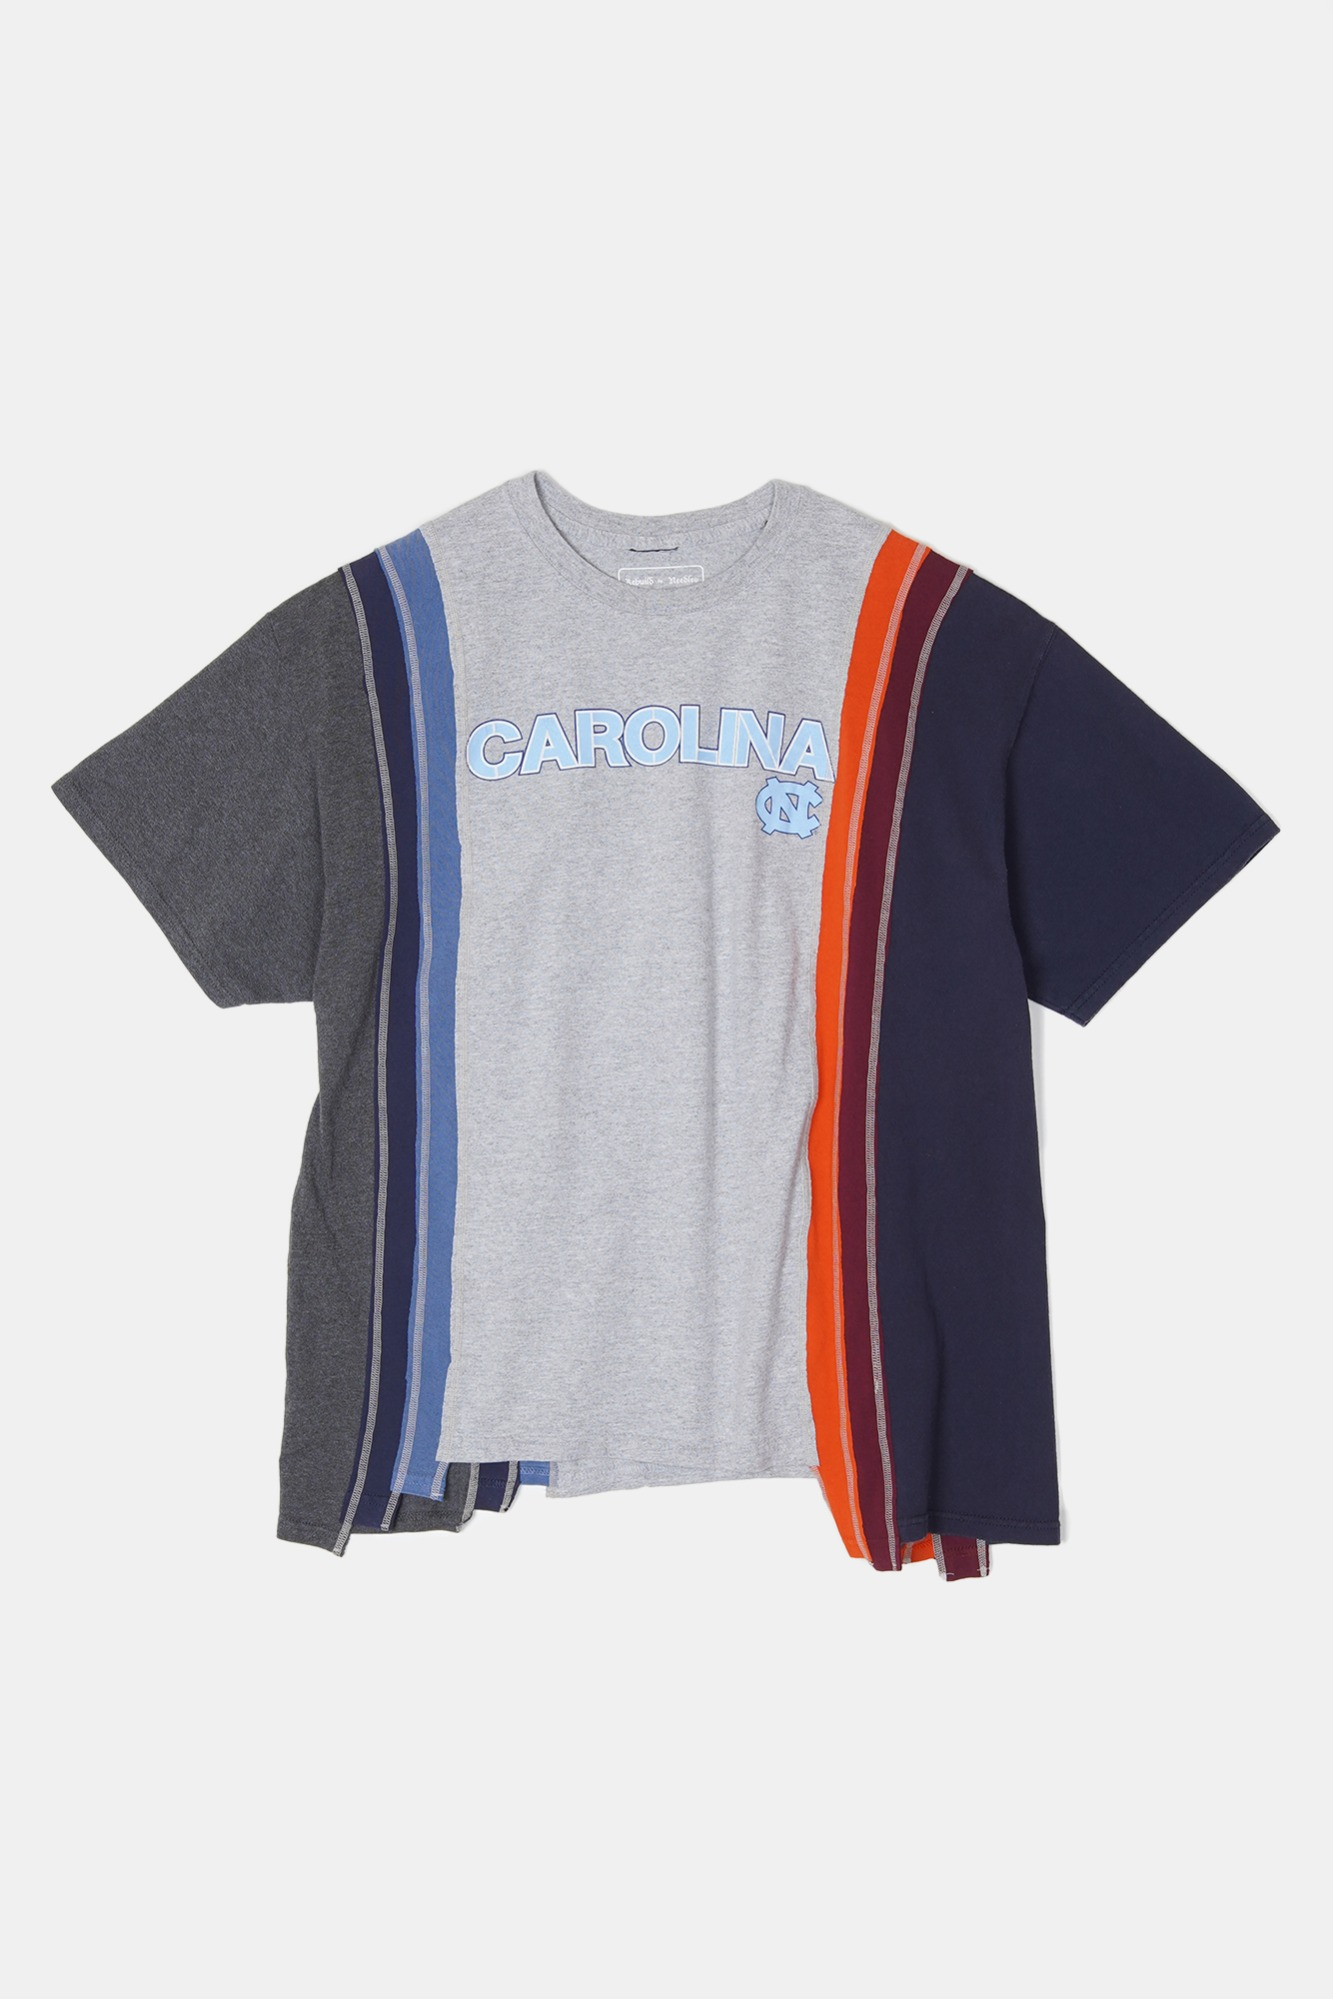 REBUILD BY NEEDLES 7 Cuts S/S College Wide Tee 3